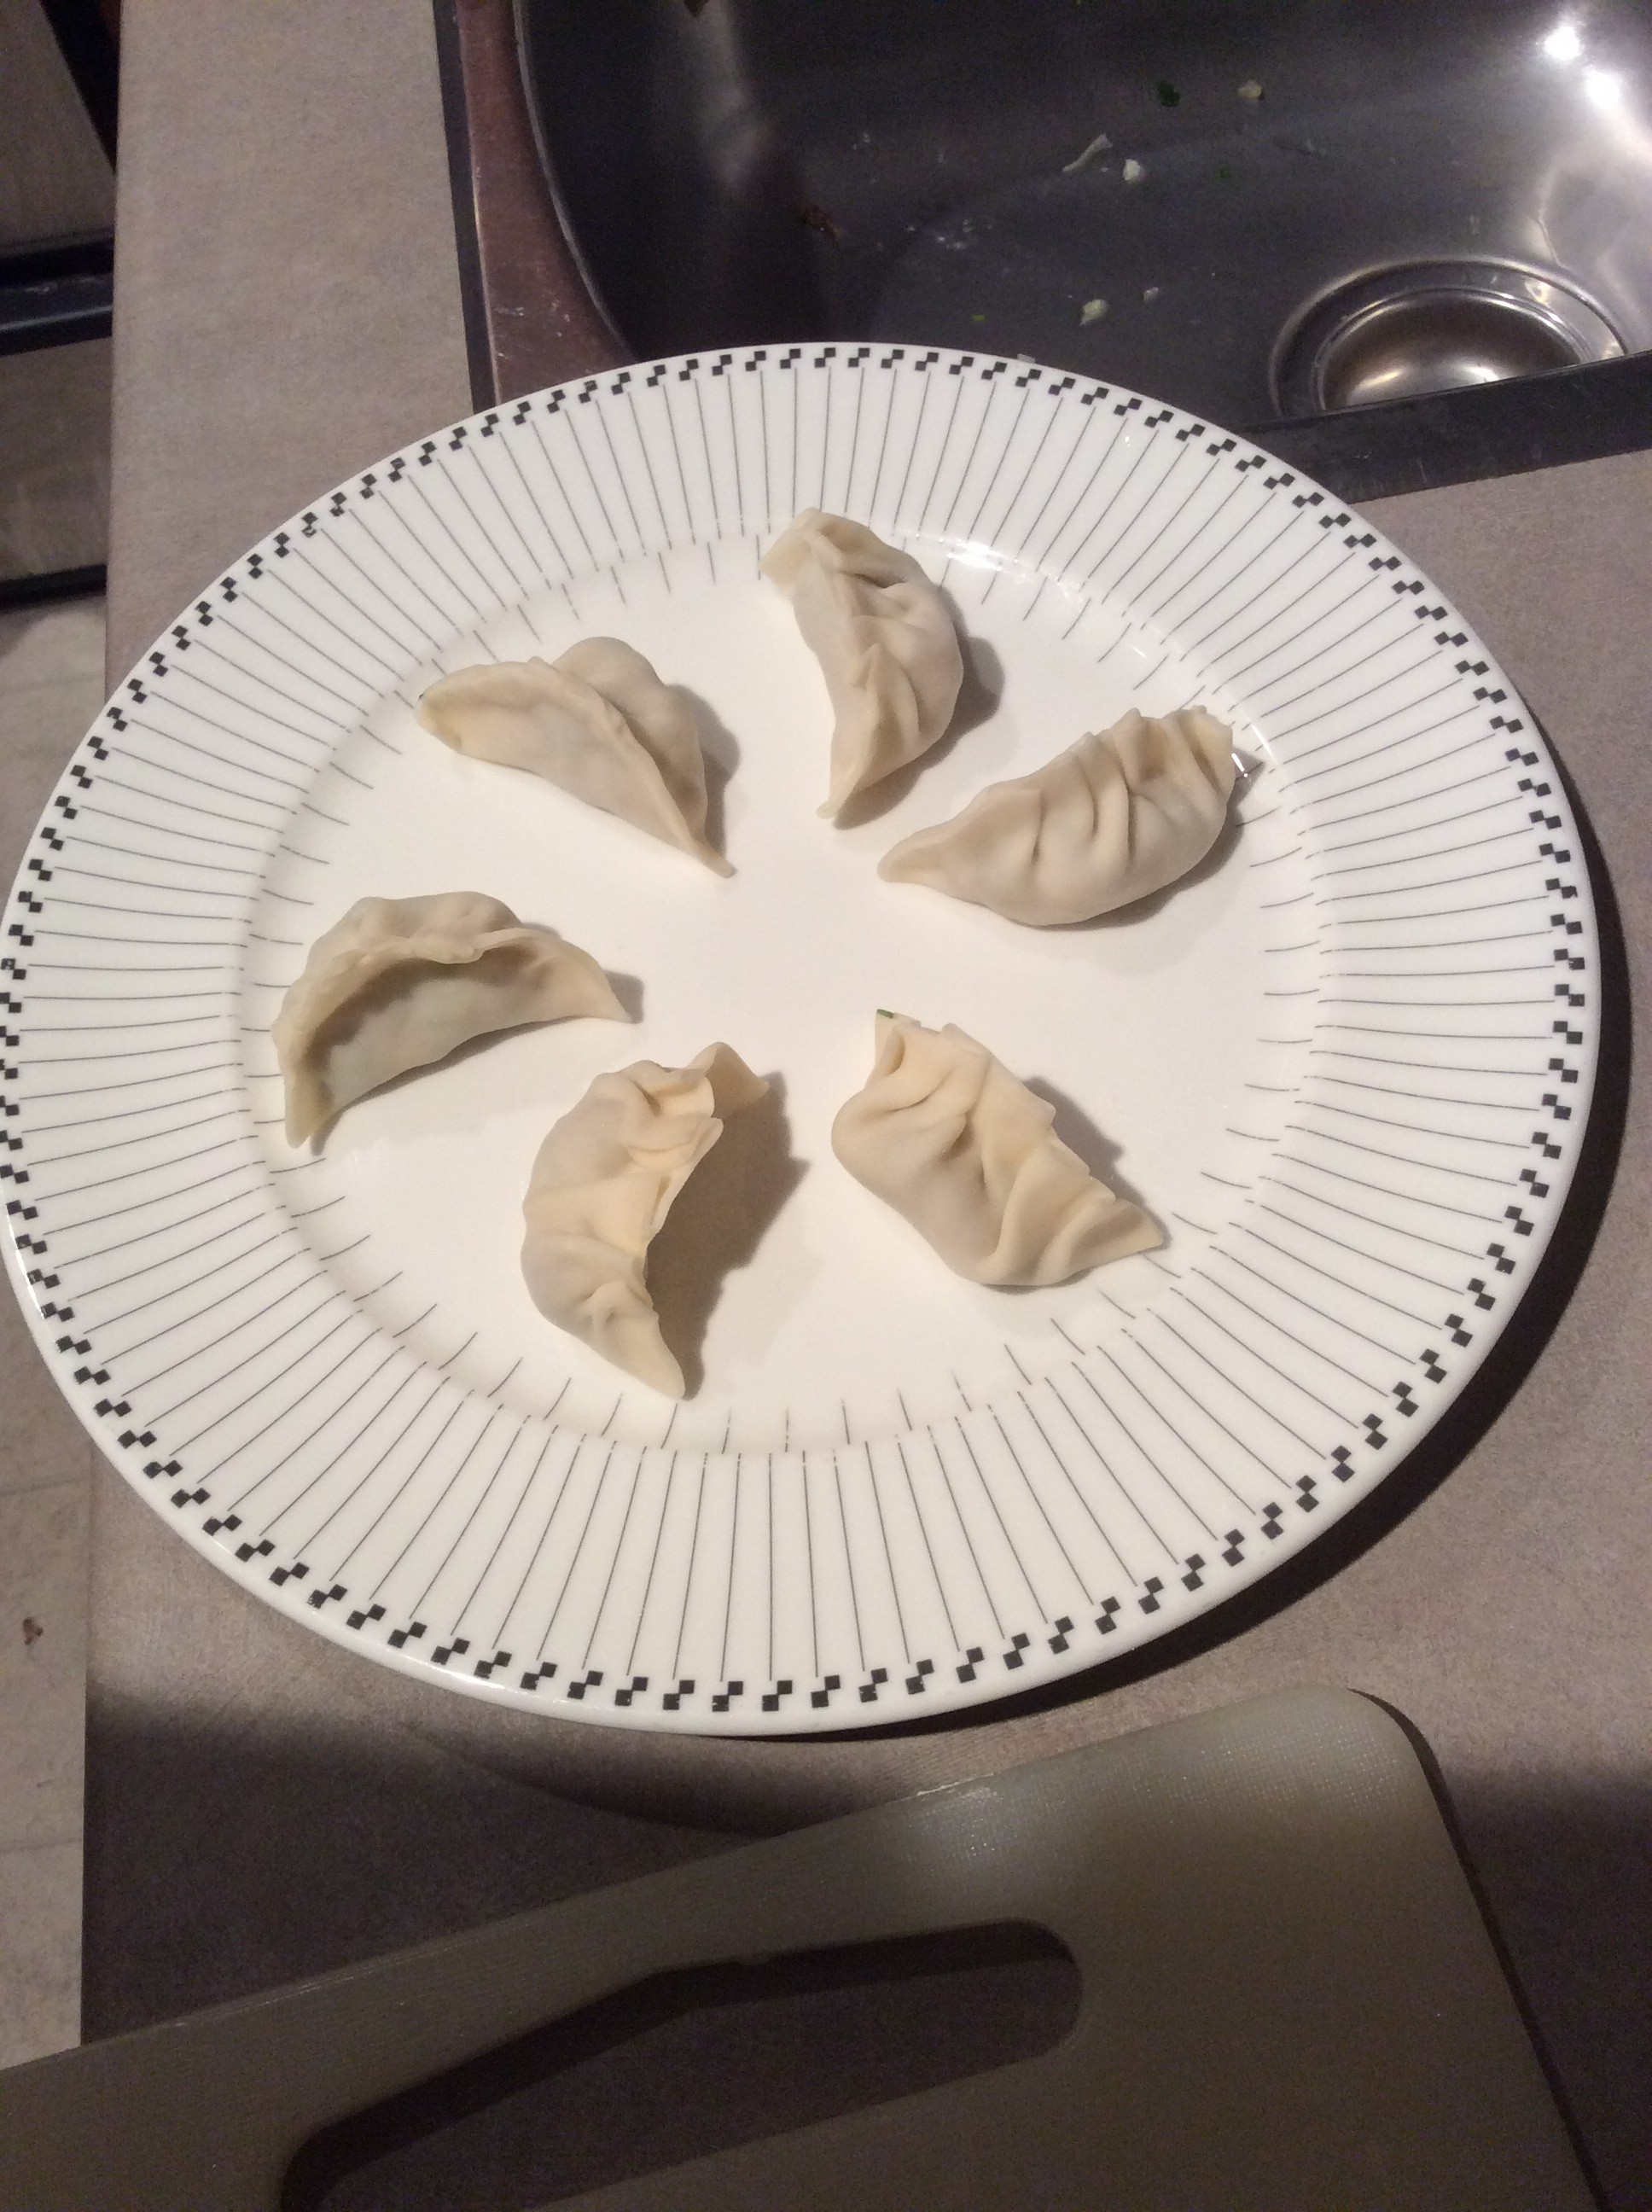 What's Cooking? Potstickers and Wontons